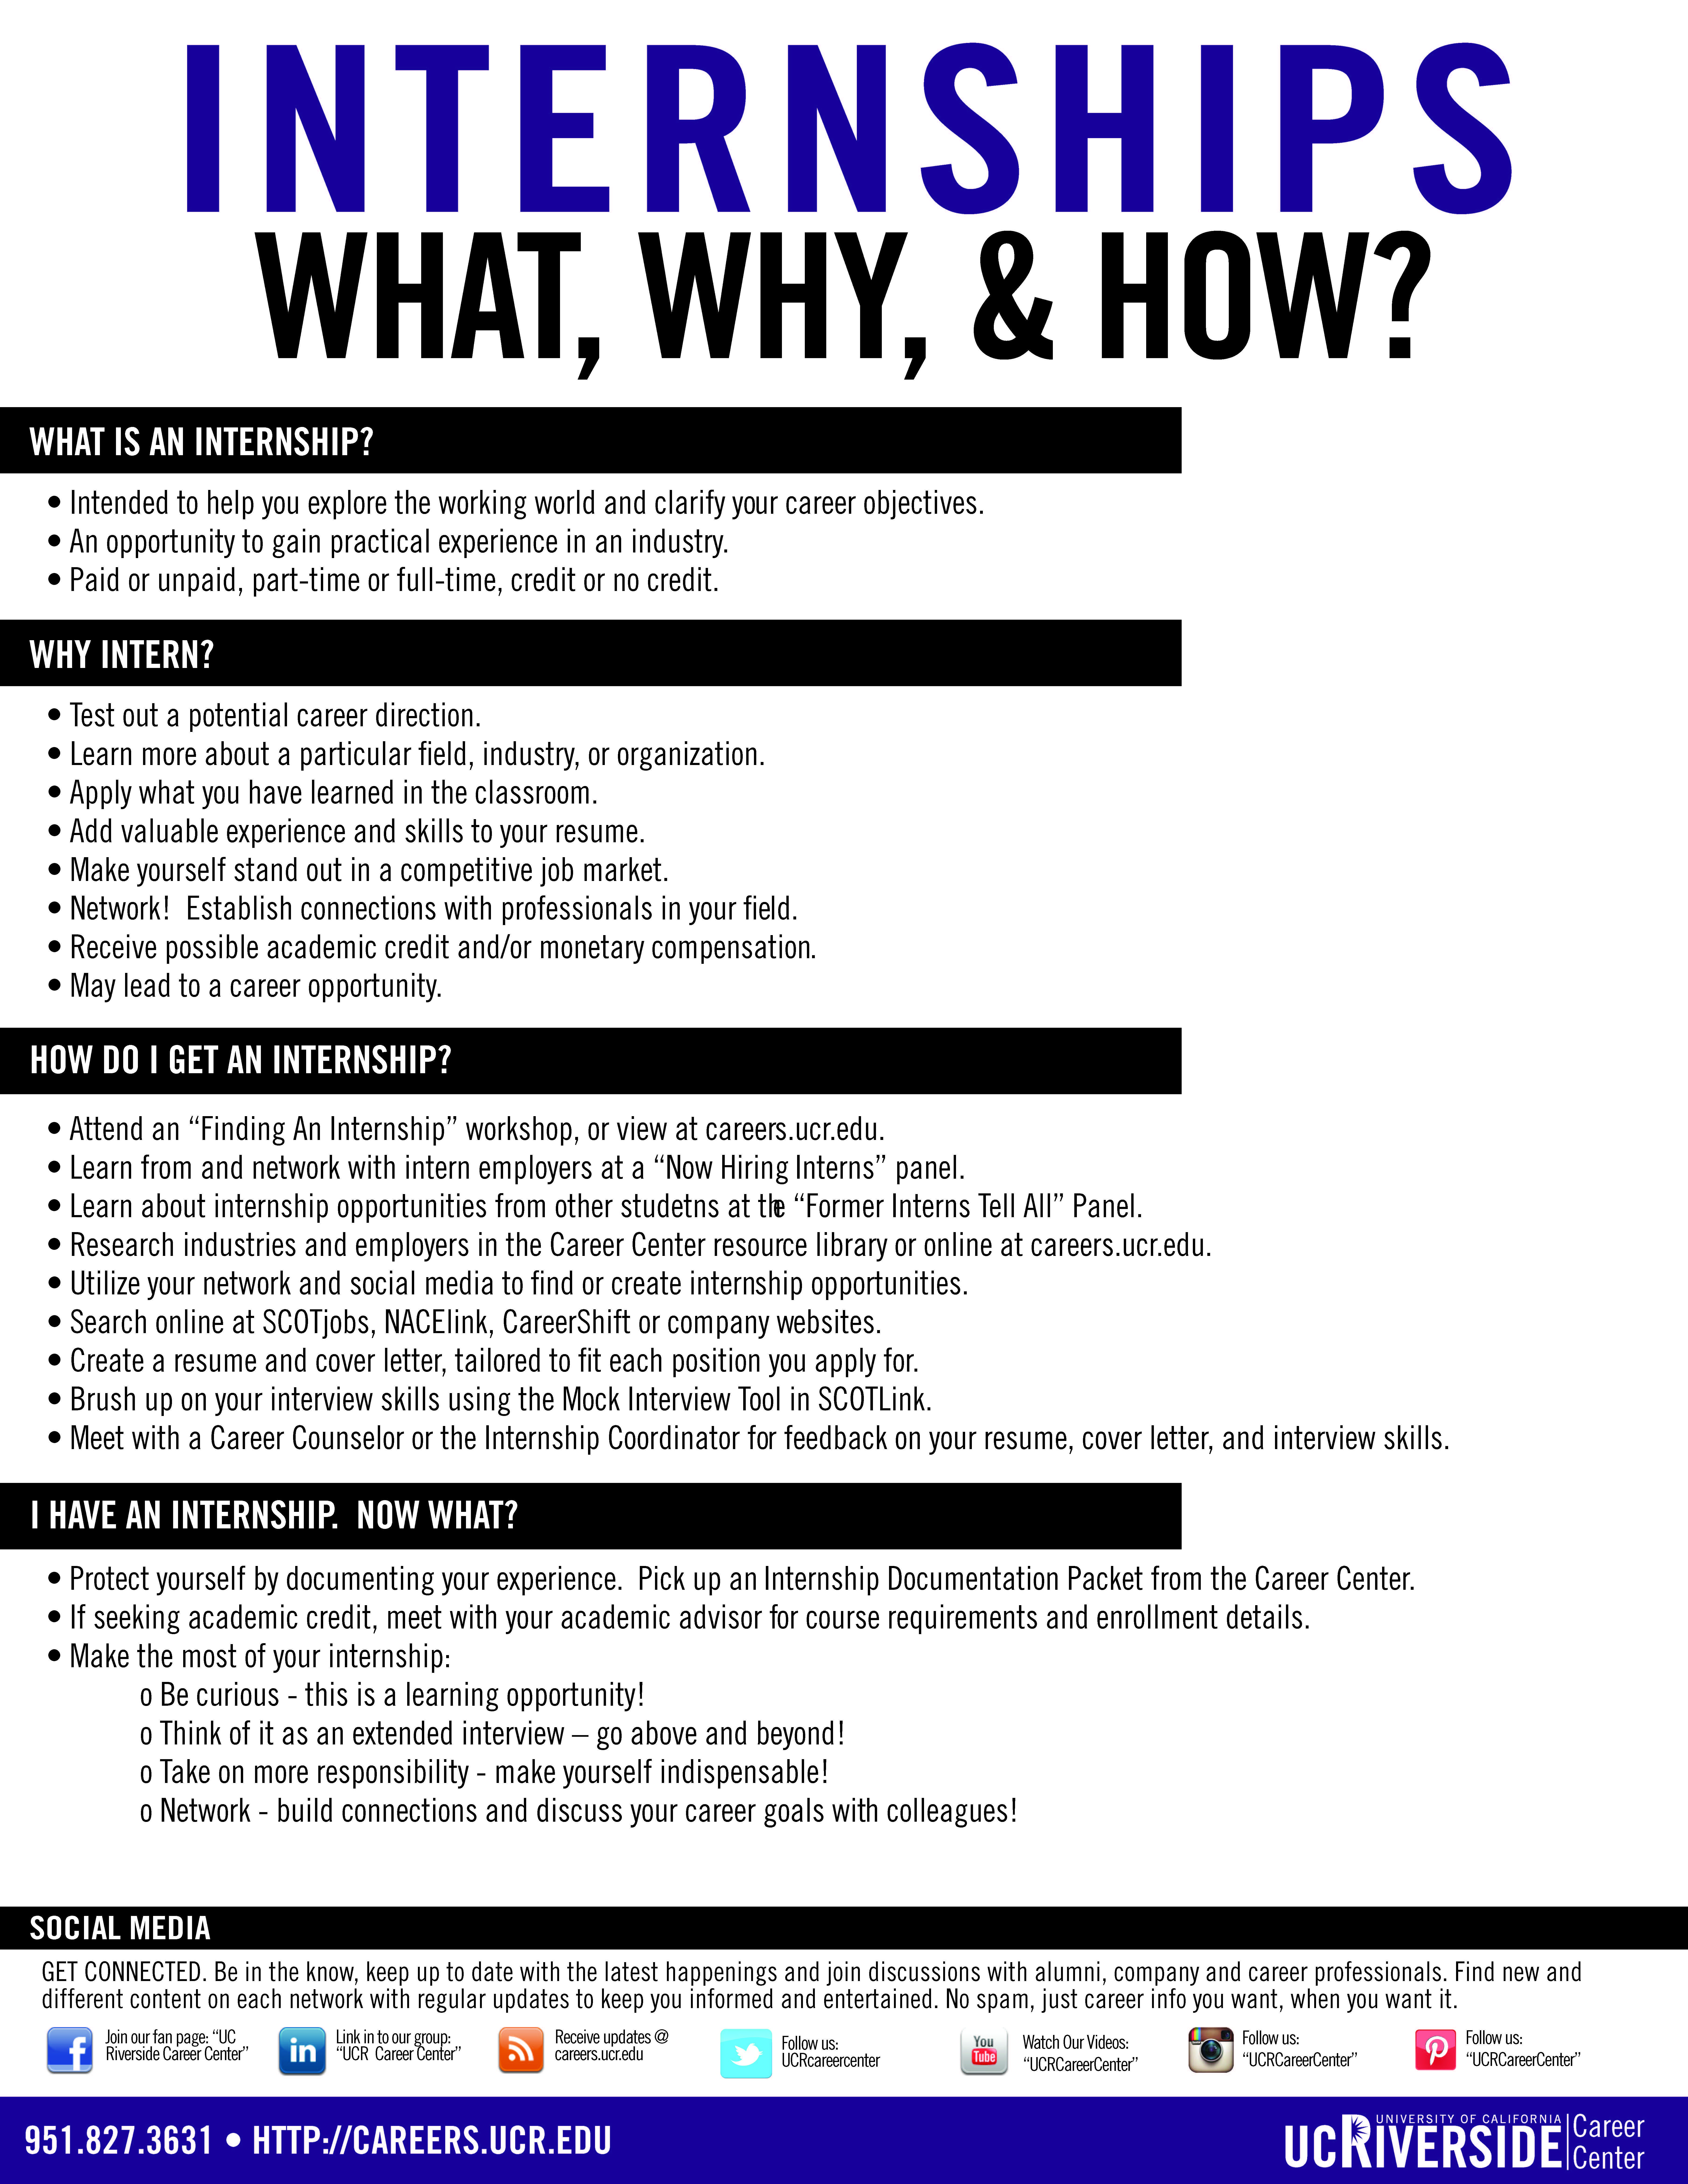 Internship pt 1 | Career Center Resources | Pinterest | College ...